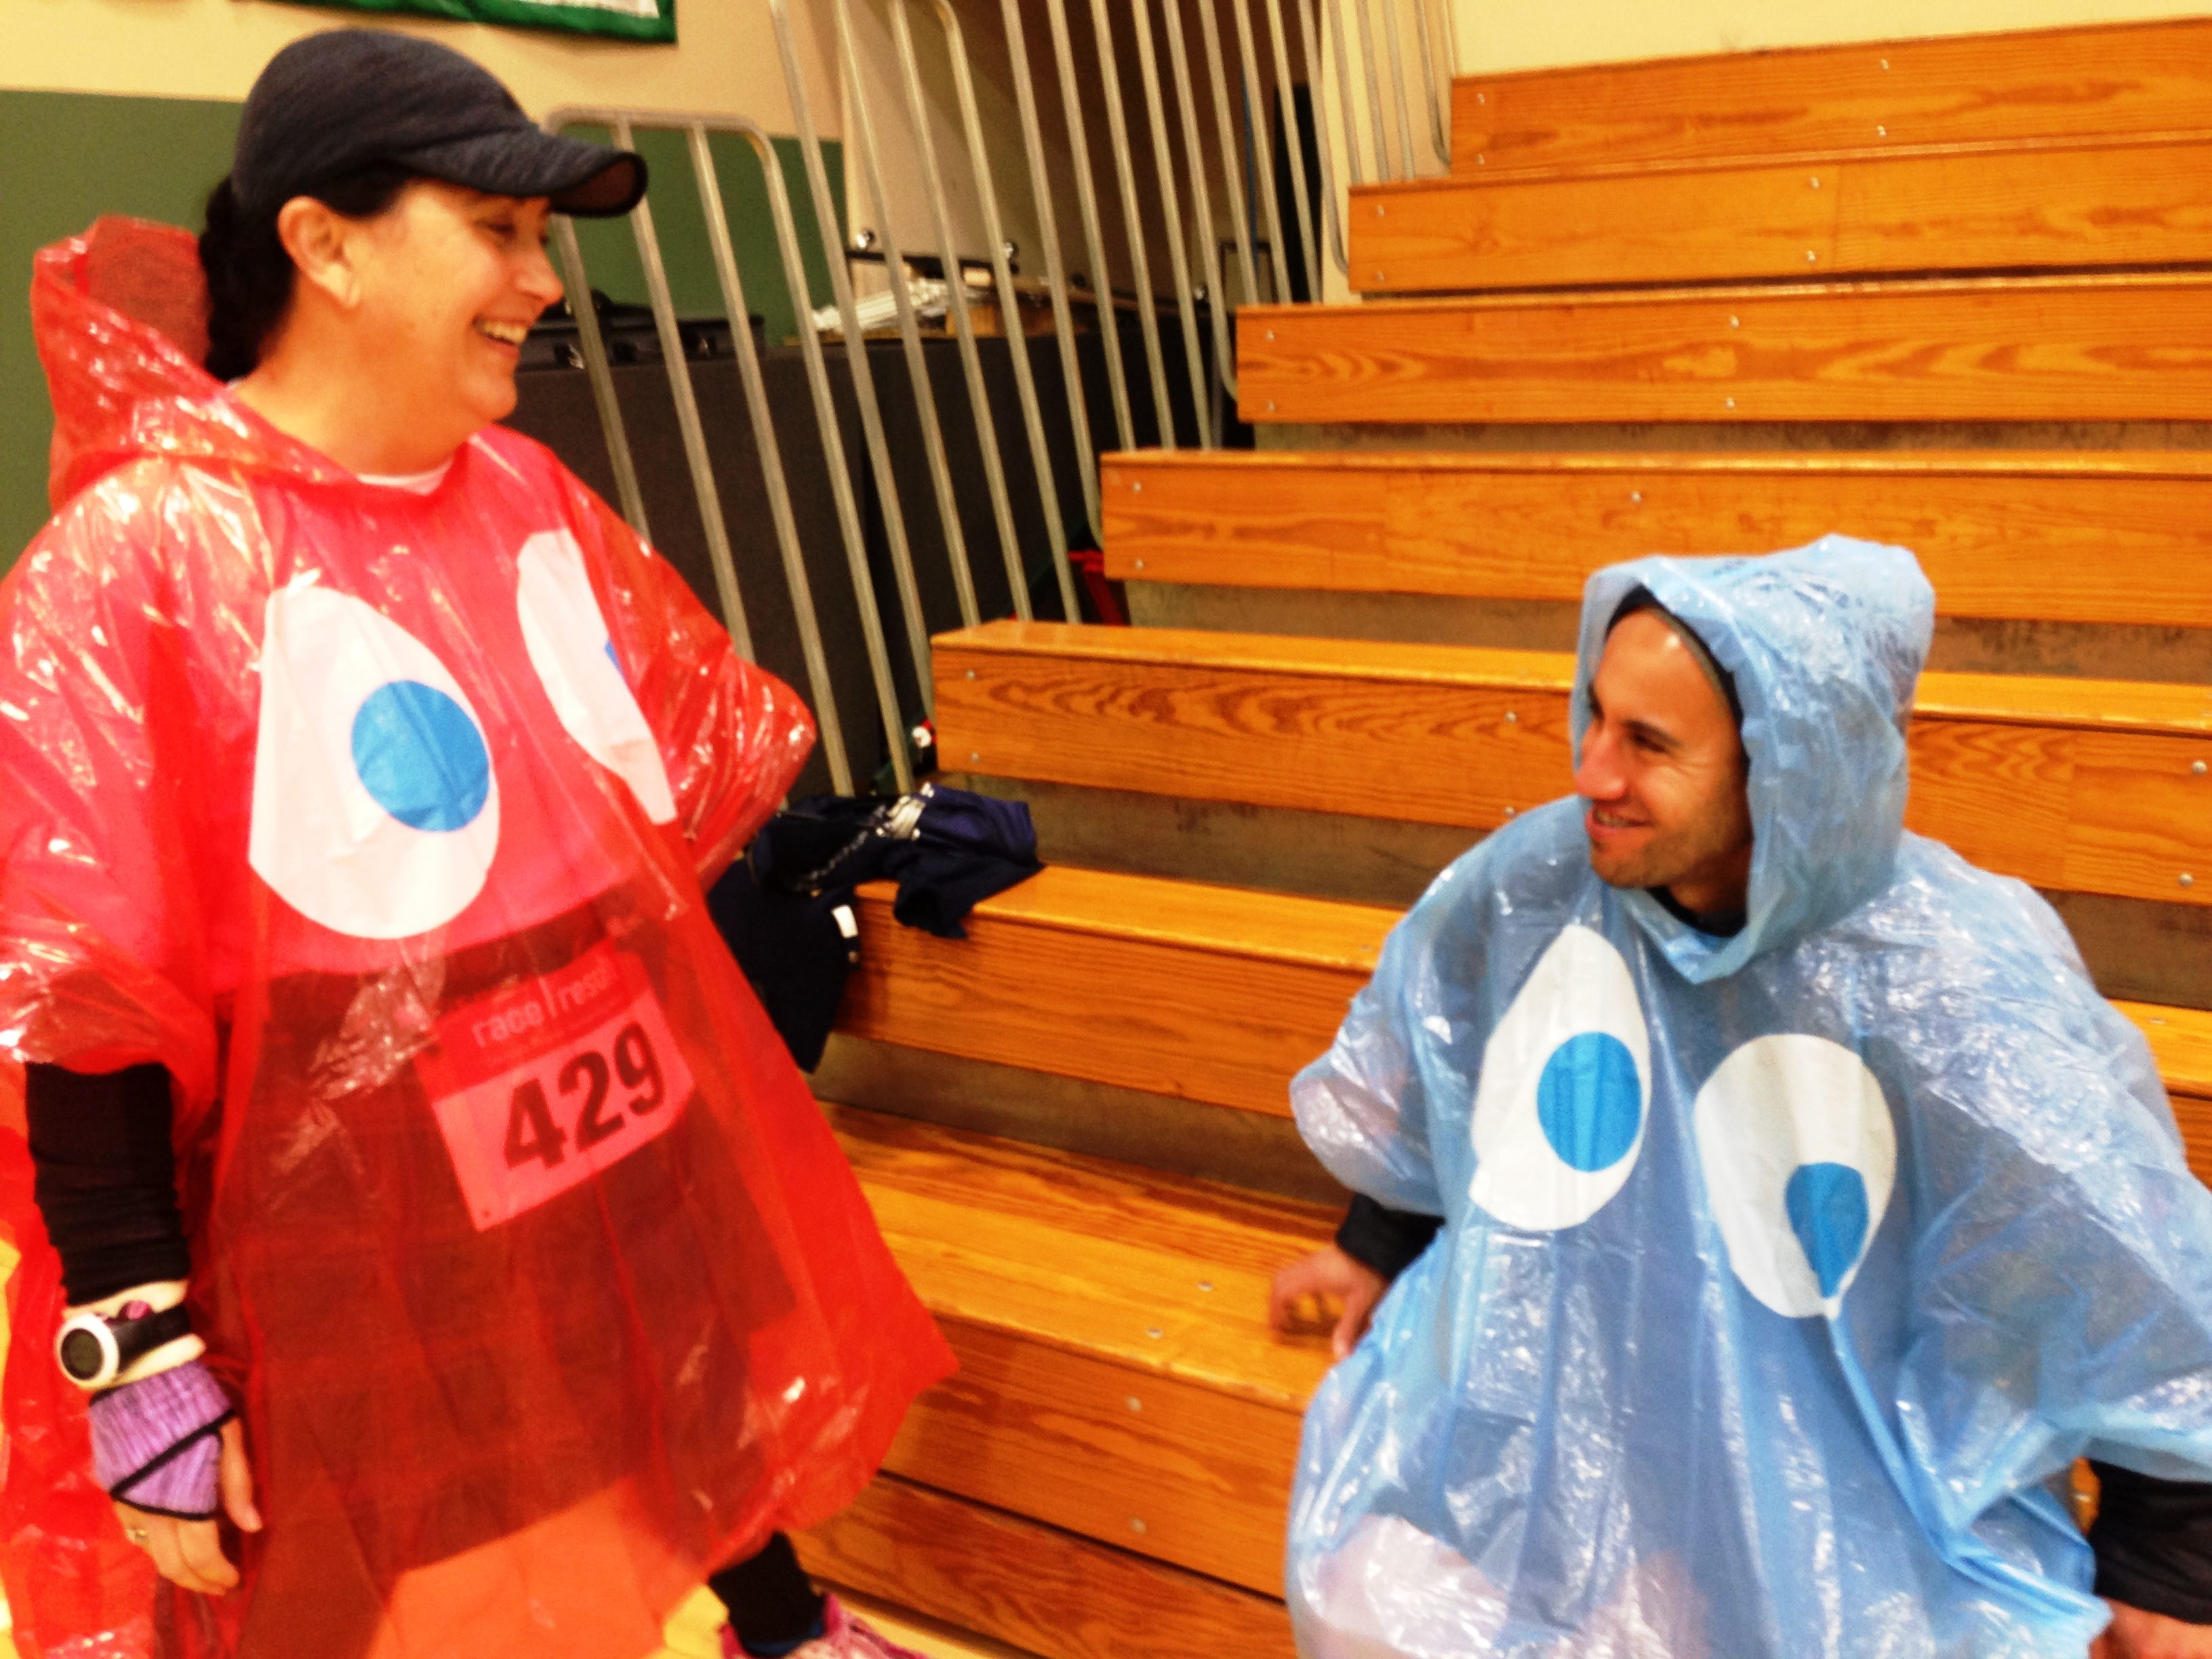 Mary Hodges and Alberto Lopez, of Los Angeles, take a break from the rain inside the gymnasium during the fifth annual Sisters of Notre Dame Nun Run, presented by La Reina High School and Middle School in Thousand Oaks on Saturday.